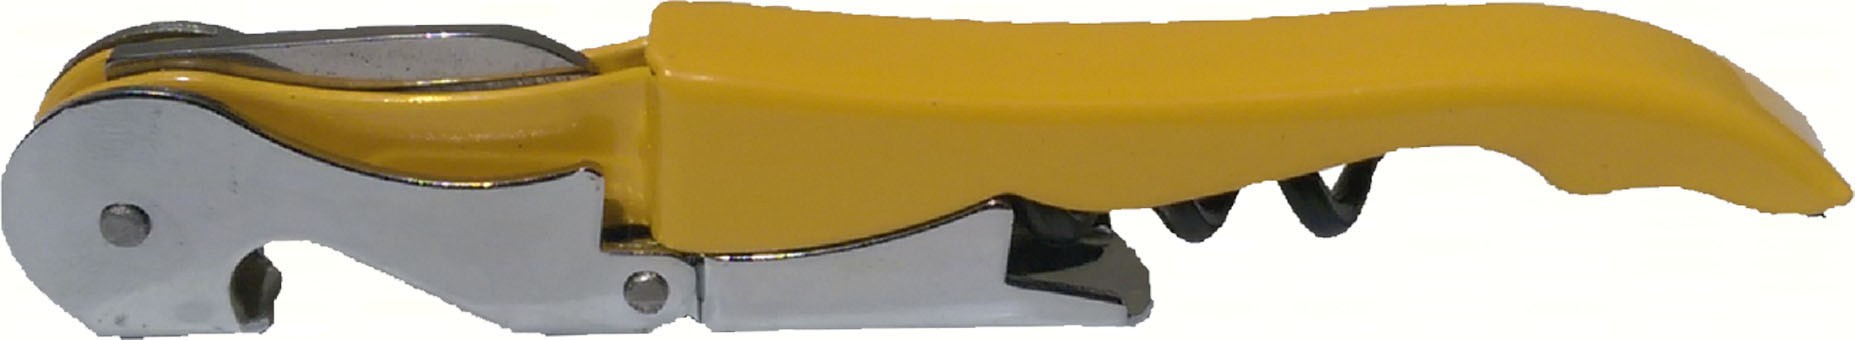 Yellow Customization Corkscrew